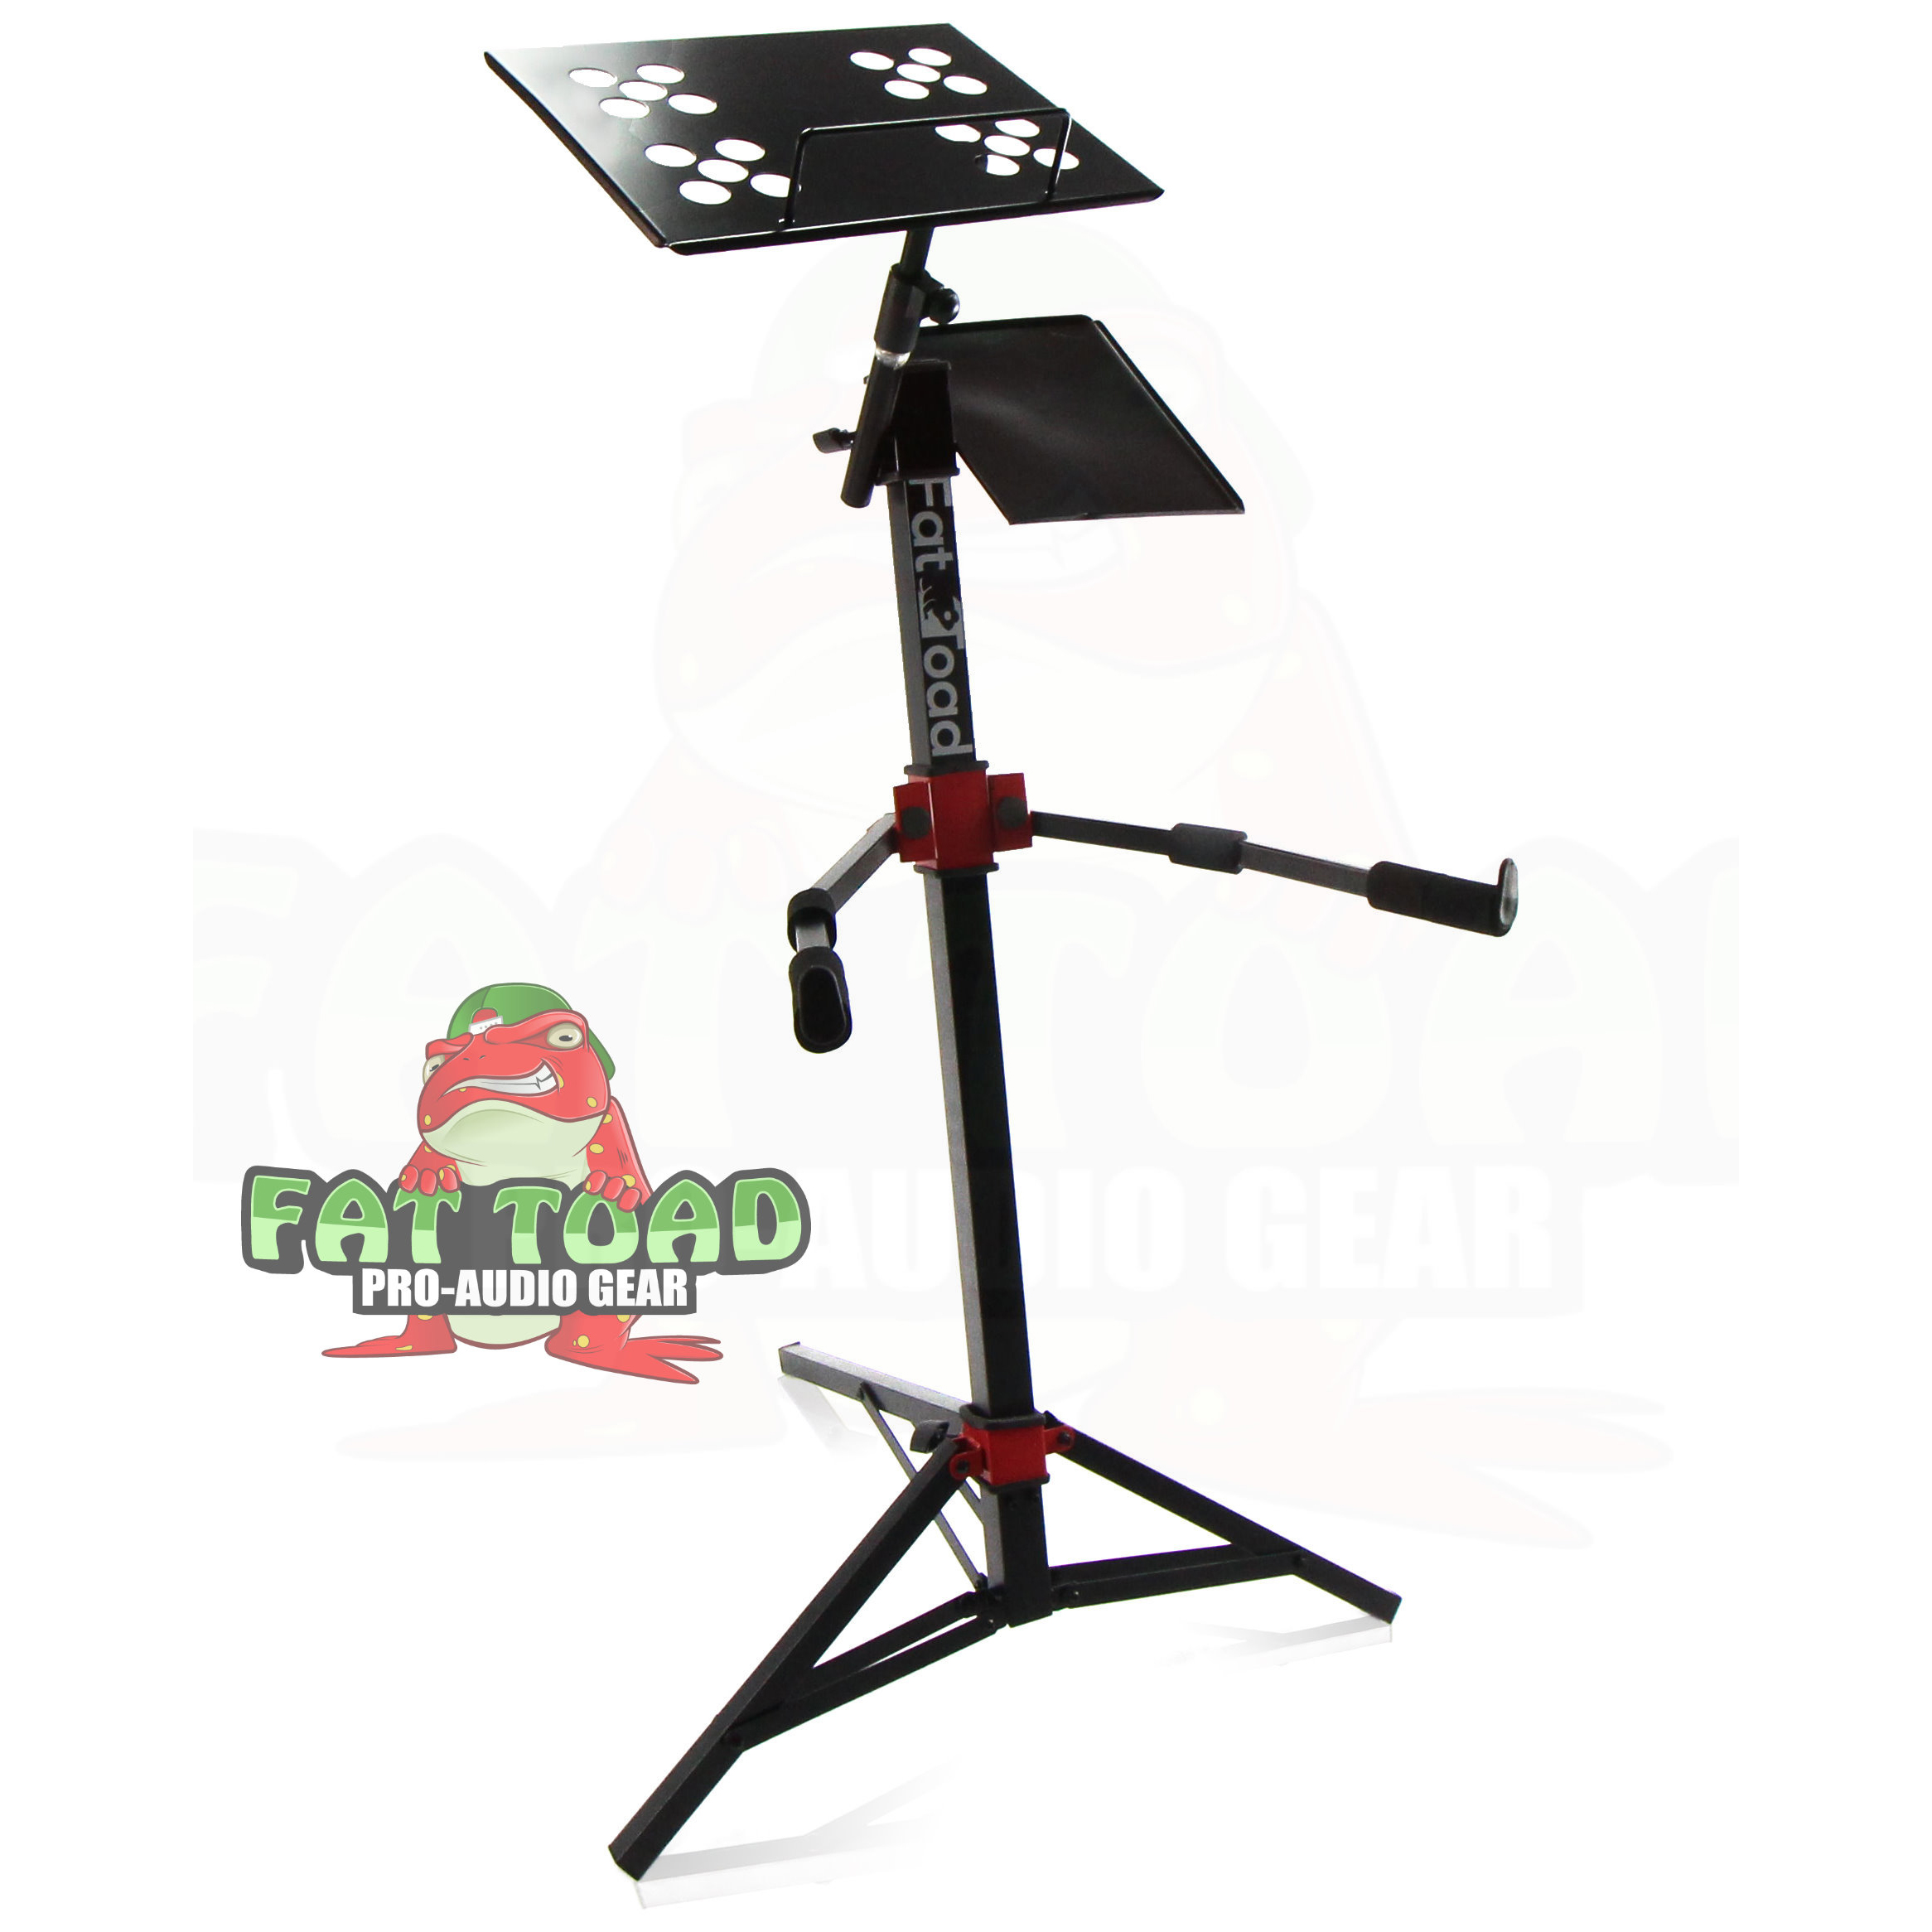 DJ Mixer Laptop Work Station Stand by Fat Toad  Portable, Adjustable Stand Up, MIDI Controller Mount, Folding Keyboard, Tablet, Synthesizer Table Mount (Multiuse)  Pro-Audio Gear Stage Performance Gig